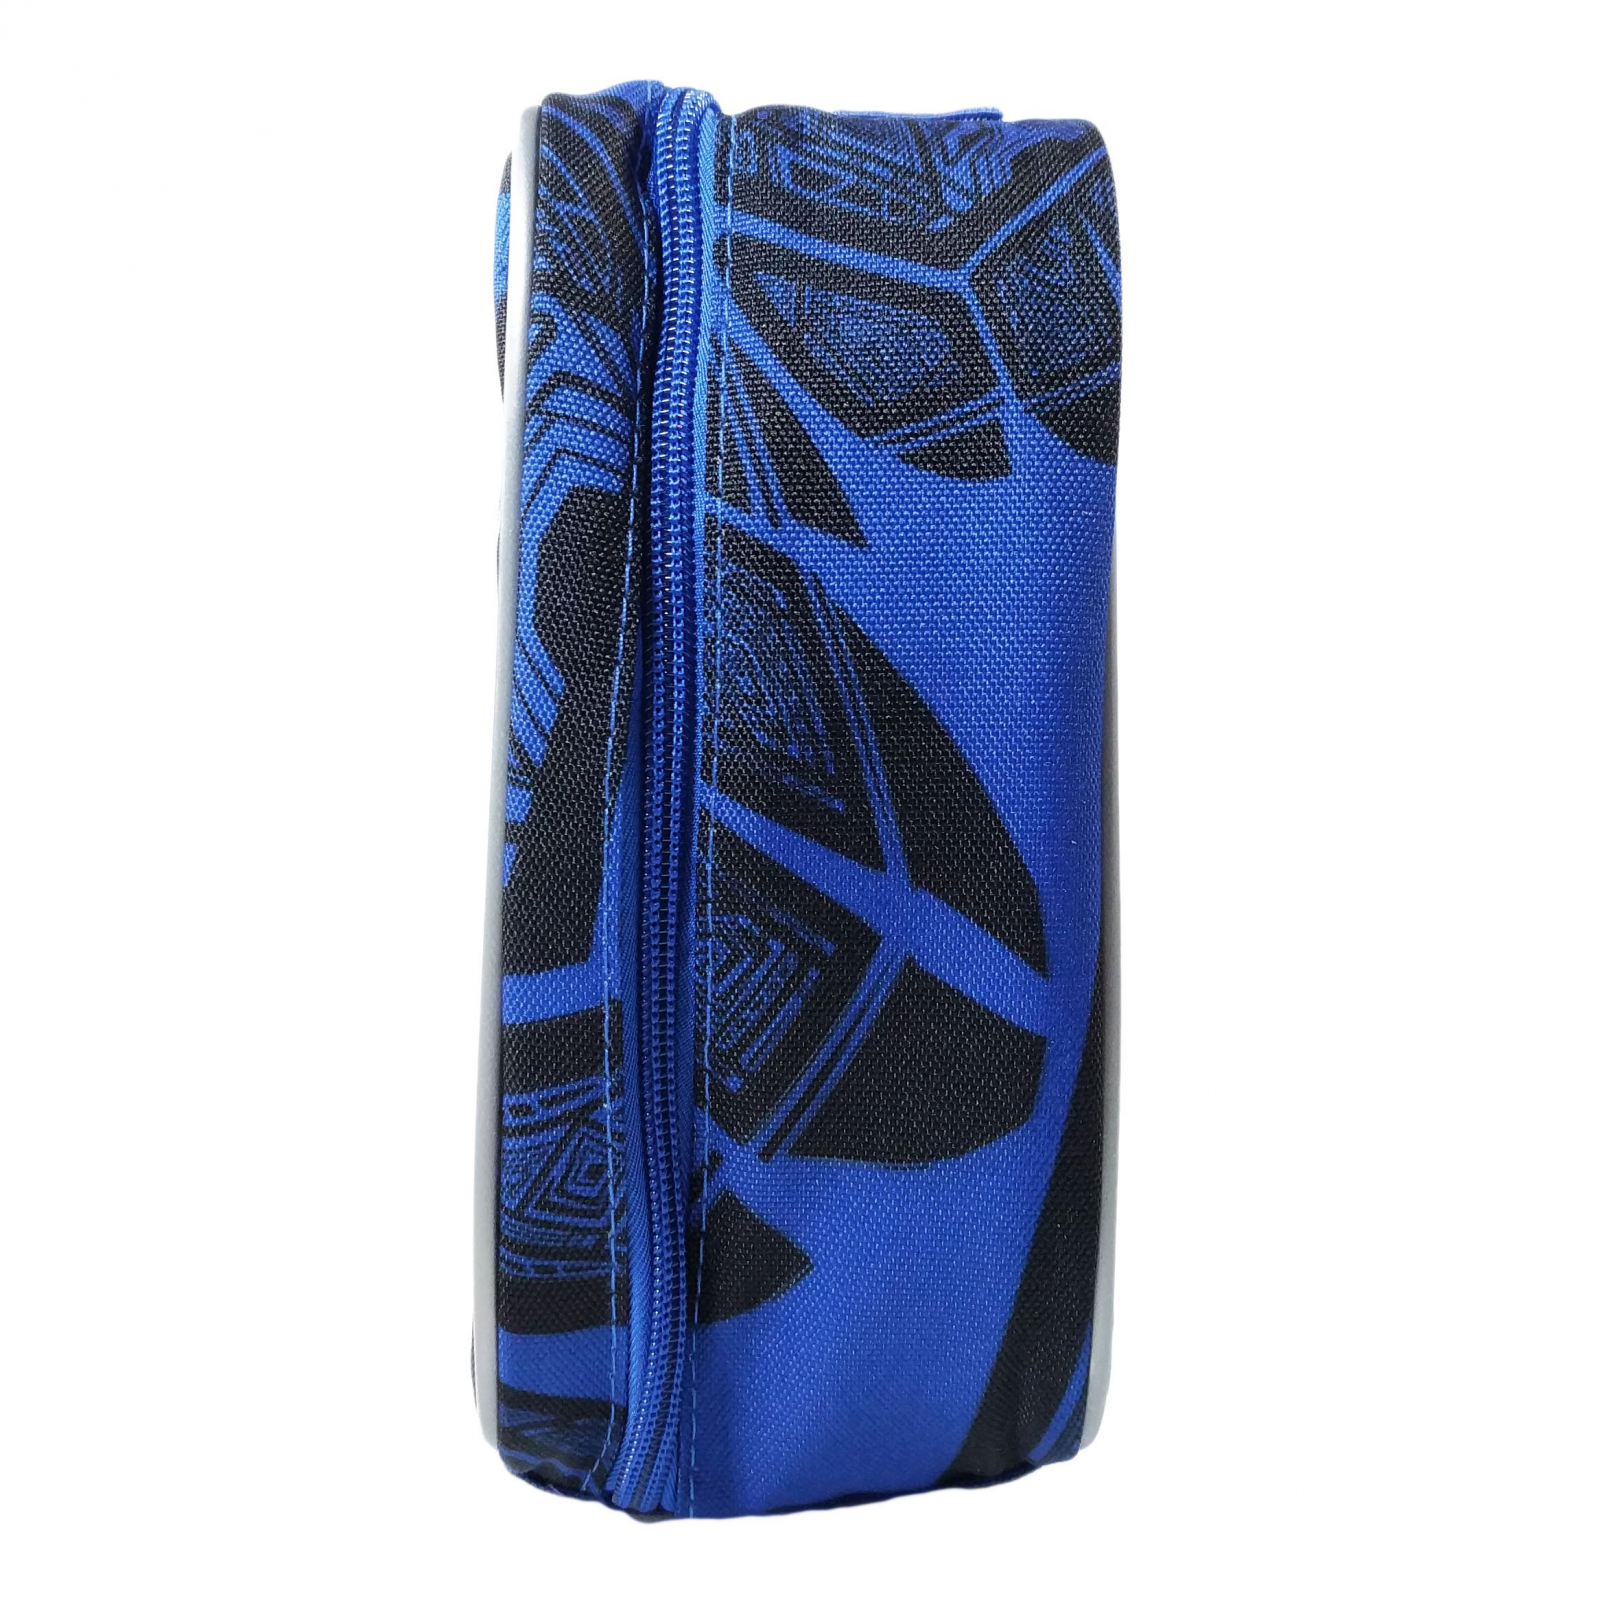 Black Panther Blue Rectangle Lunch Box Bag Built in ID Slot